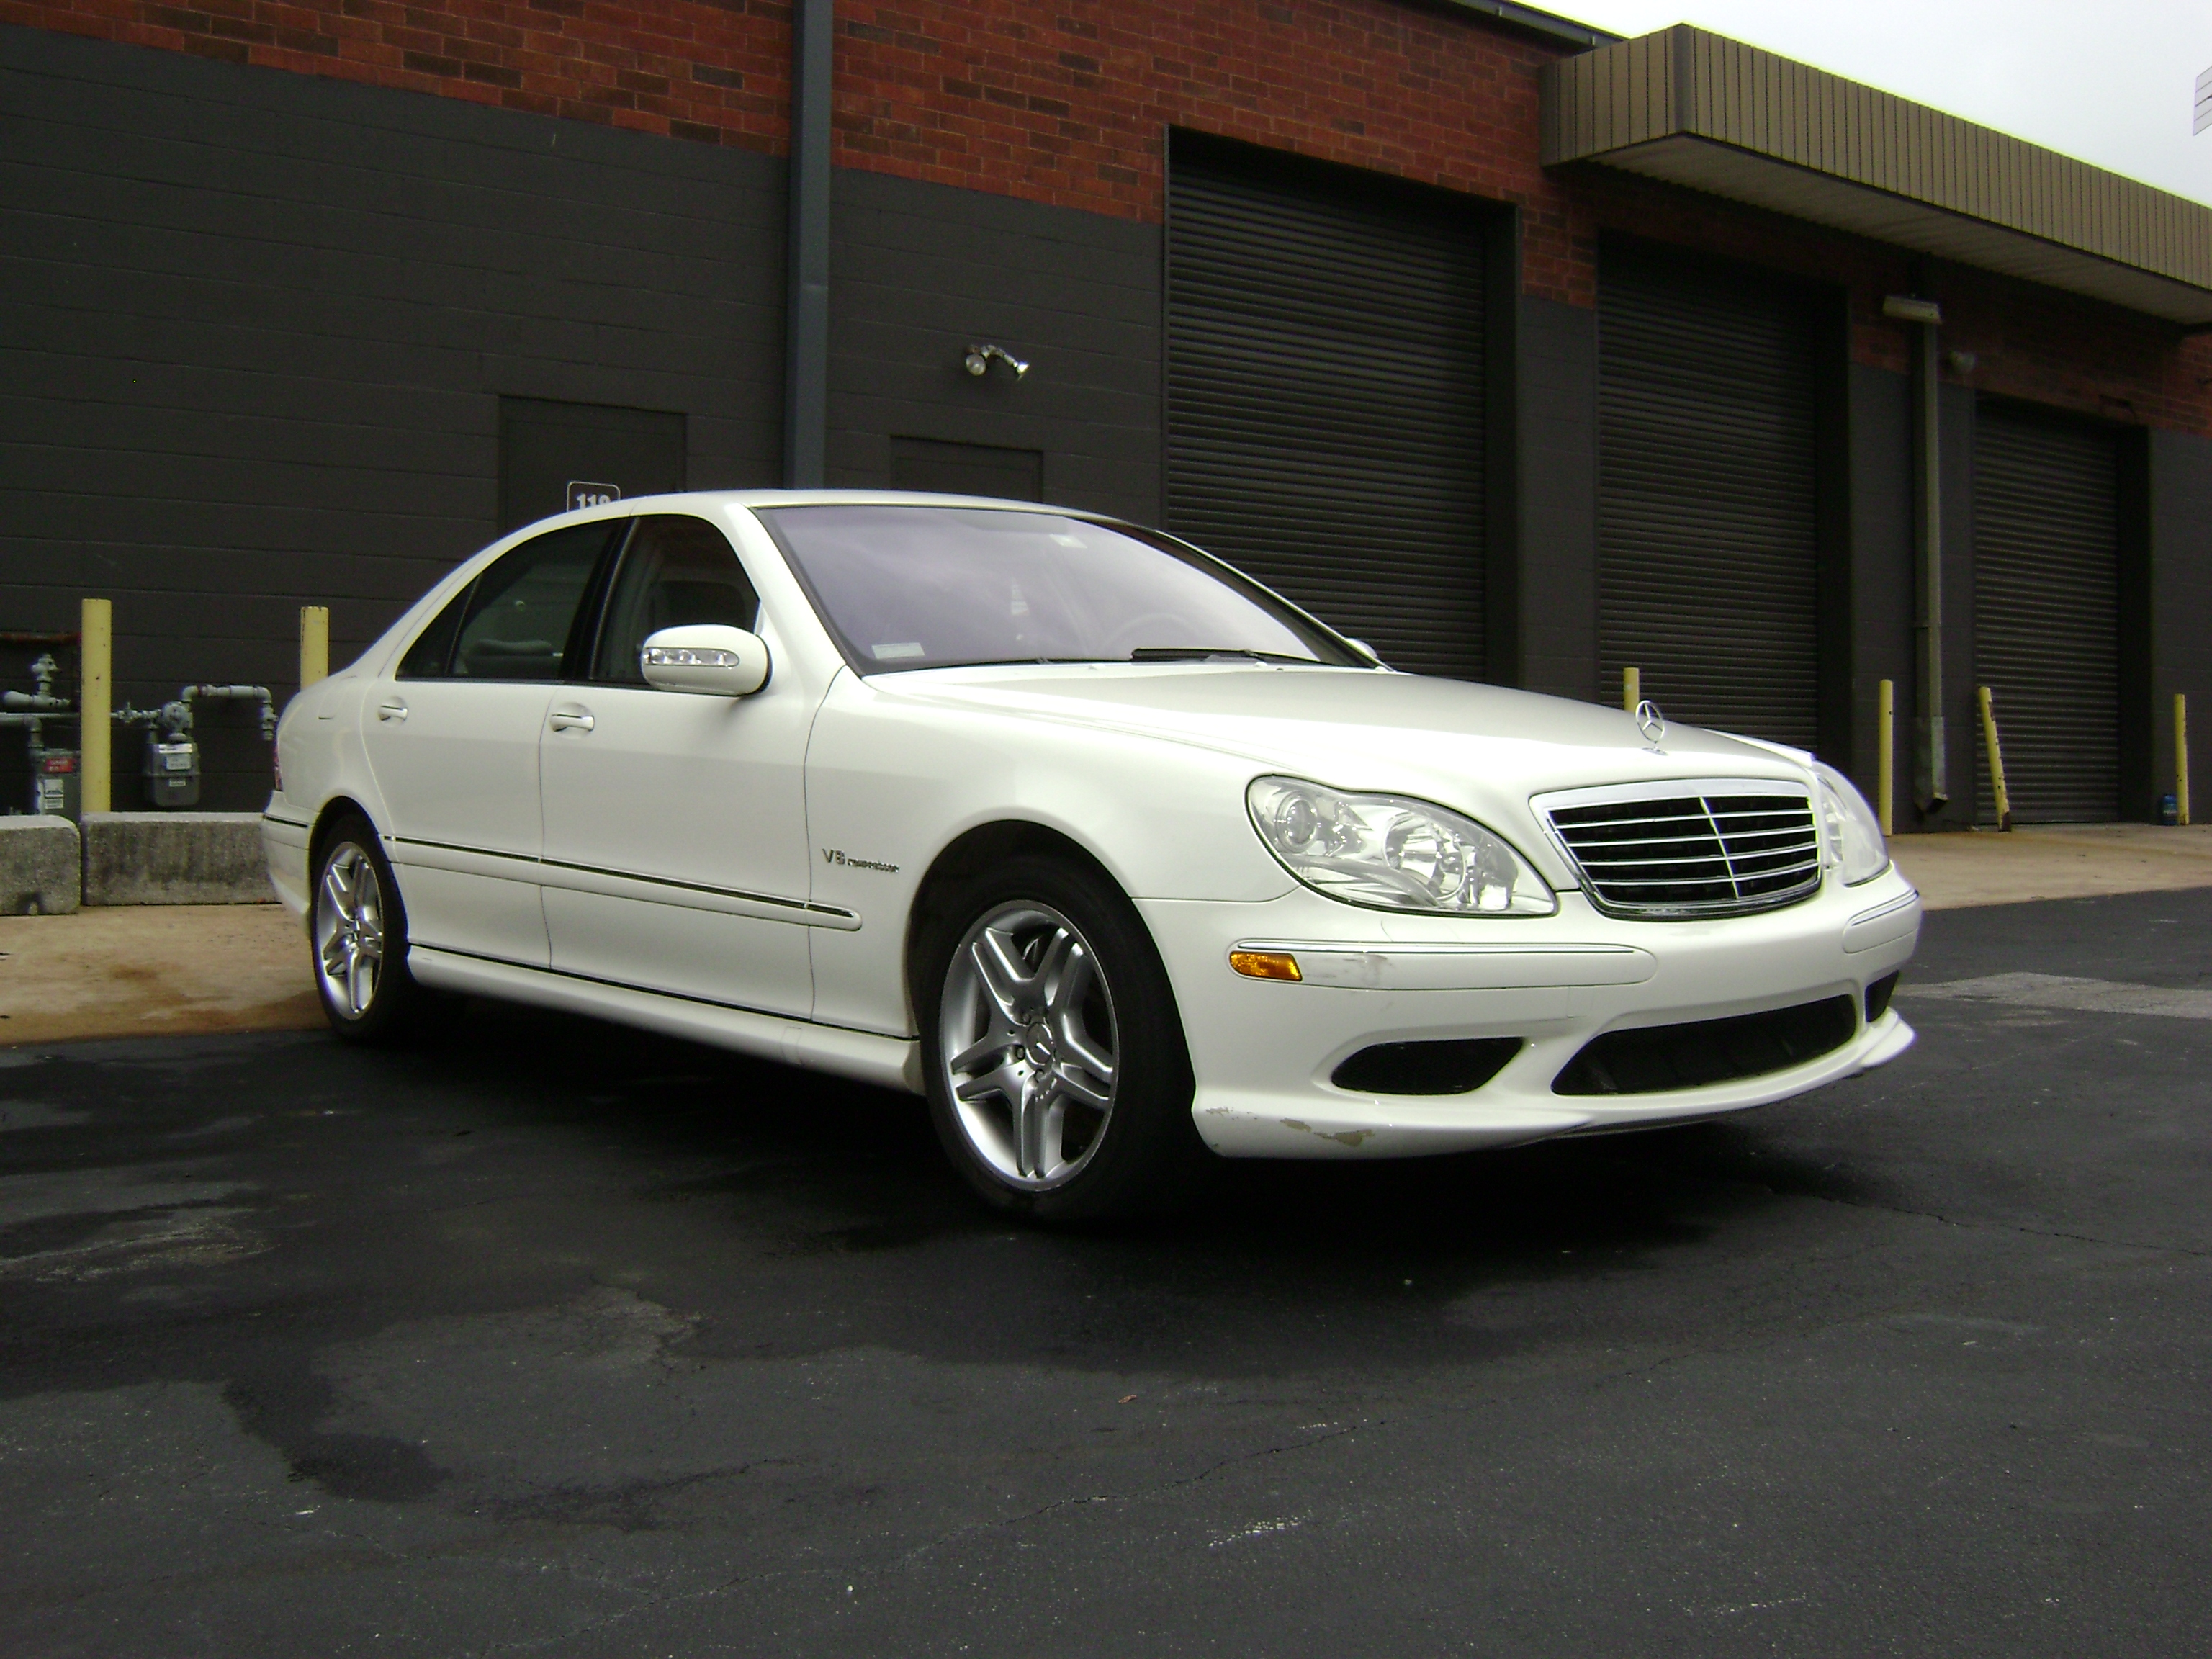 Image gallery 2008 s55 amg for 2003 mercedes benz s55 amg